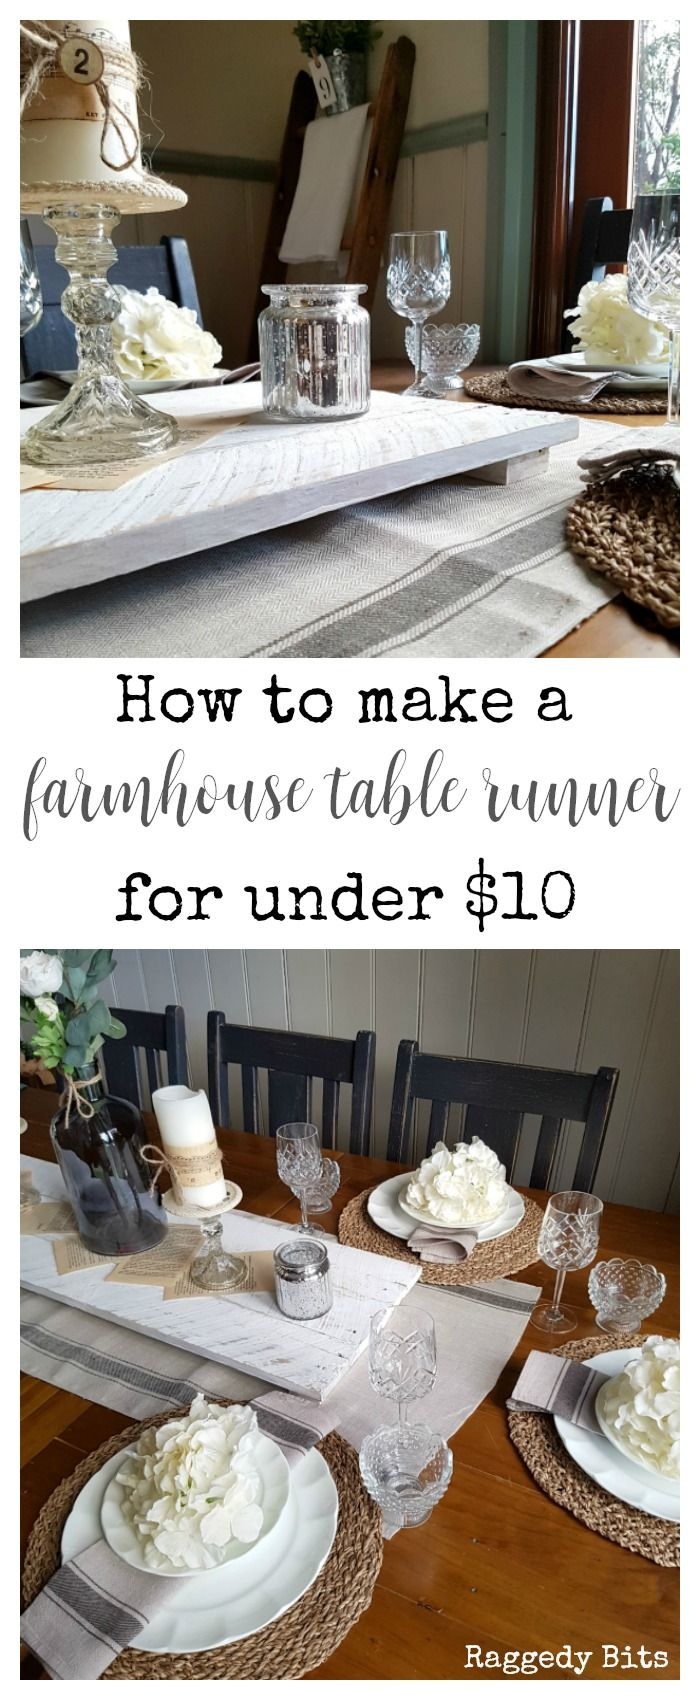 Sharing how to make a Farmhouse Table Runner with Ikea Tea Towels for under $10 | www.raggedy-bits.com